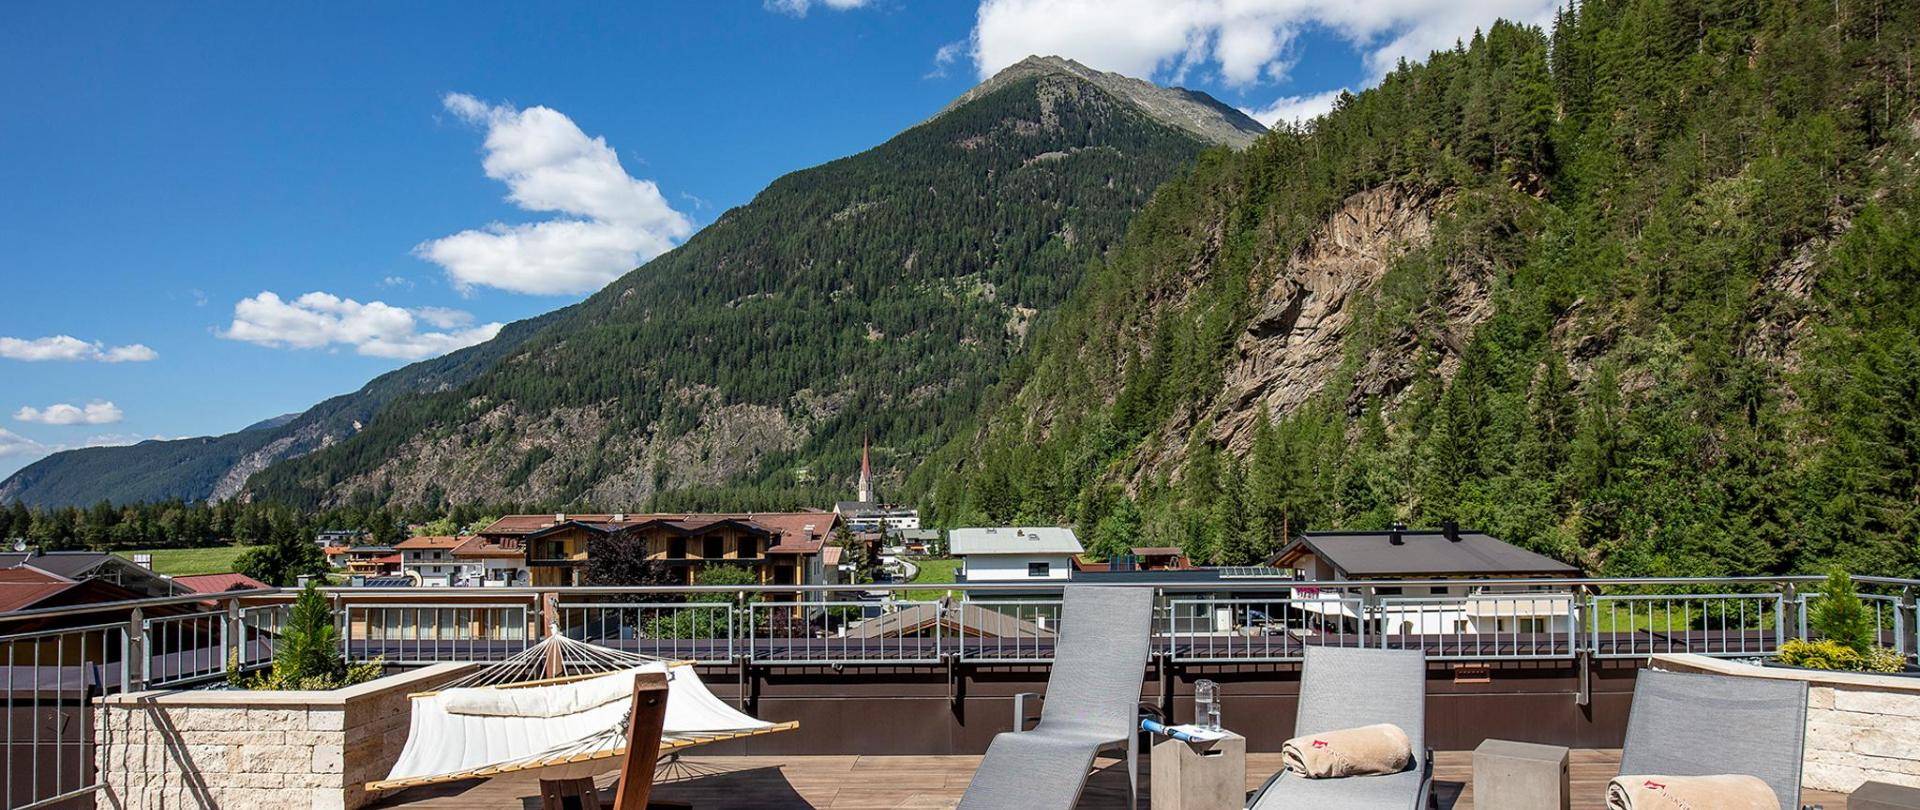 LE-190716-Appartements-Panorama-Terrasse-0975 kl.jpg